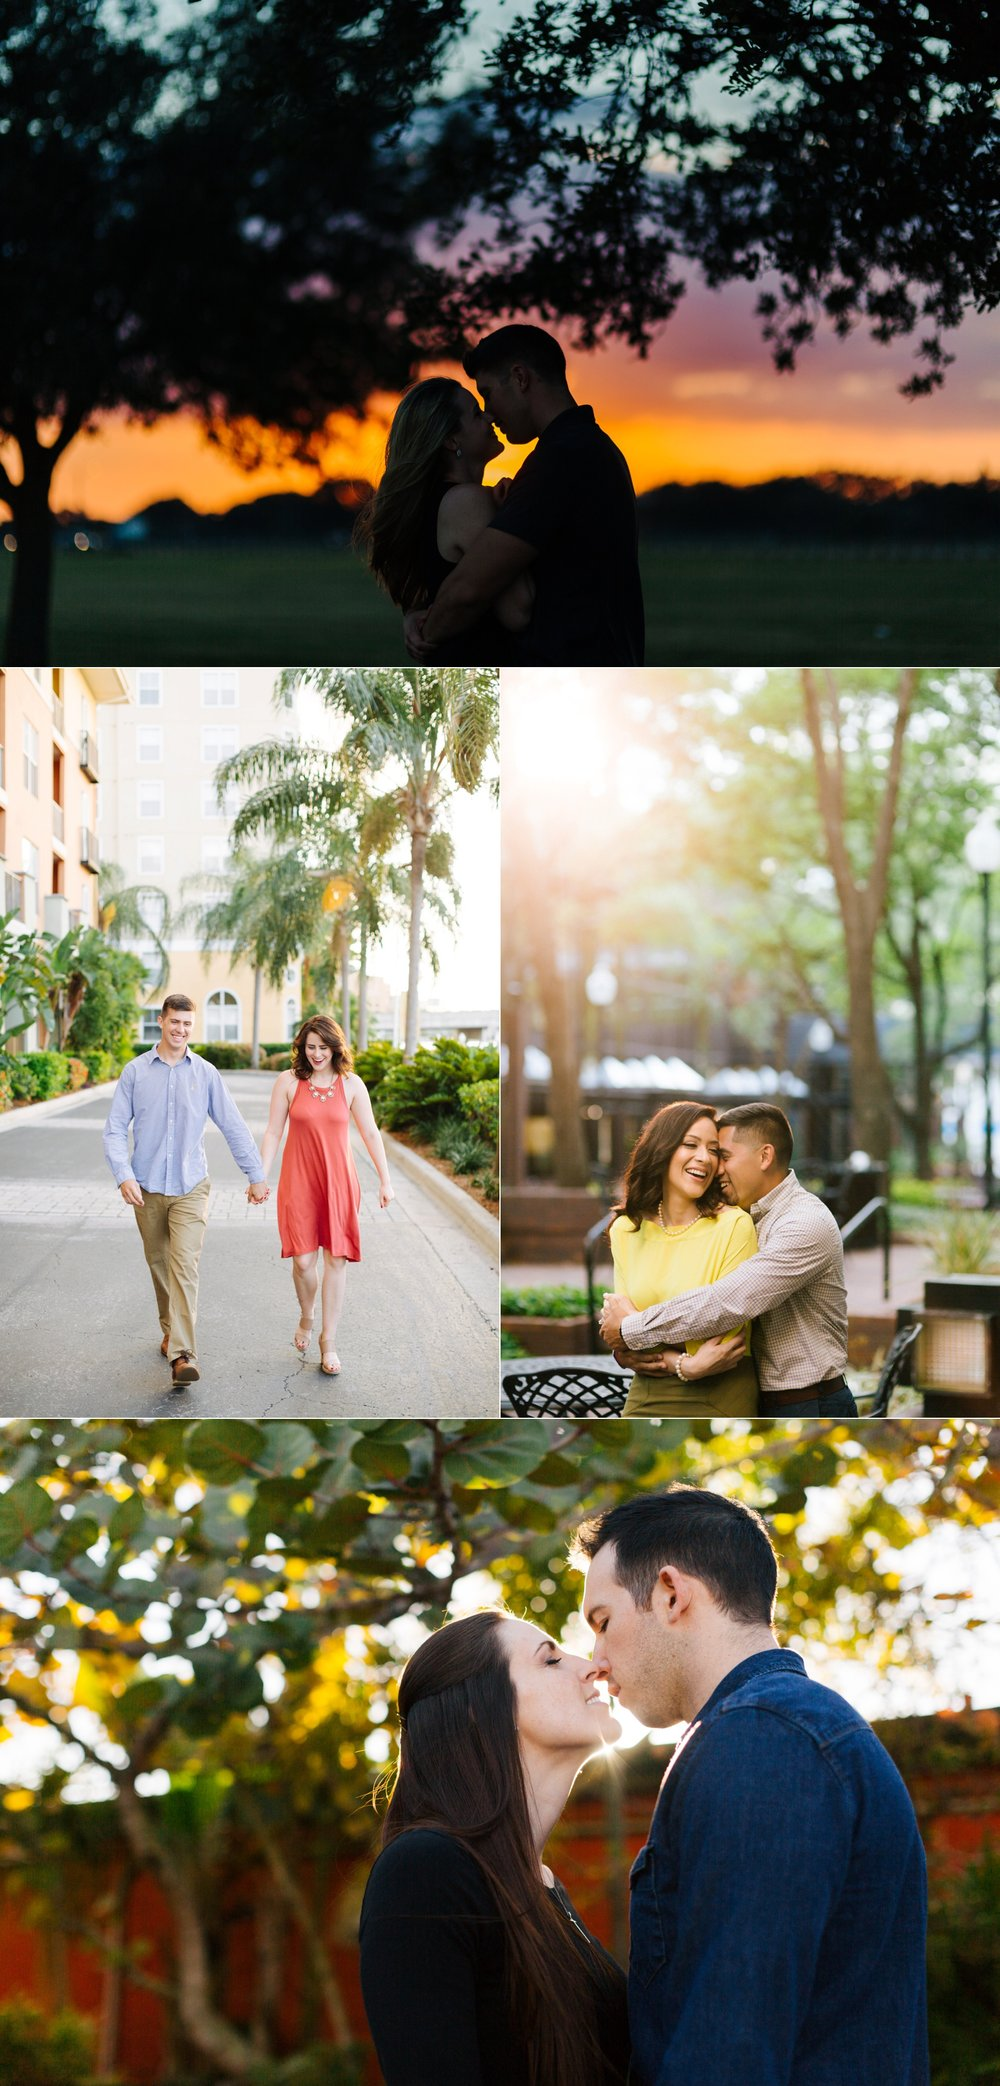 Jake & Katie Photography Best of Couples 2016-066.jpg